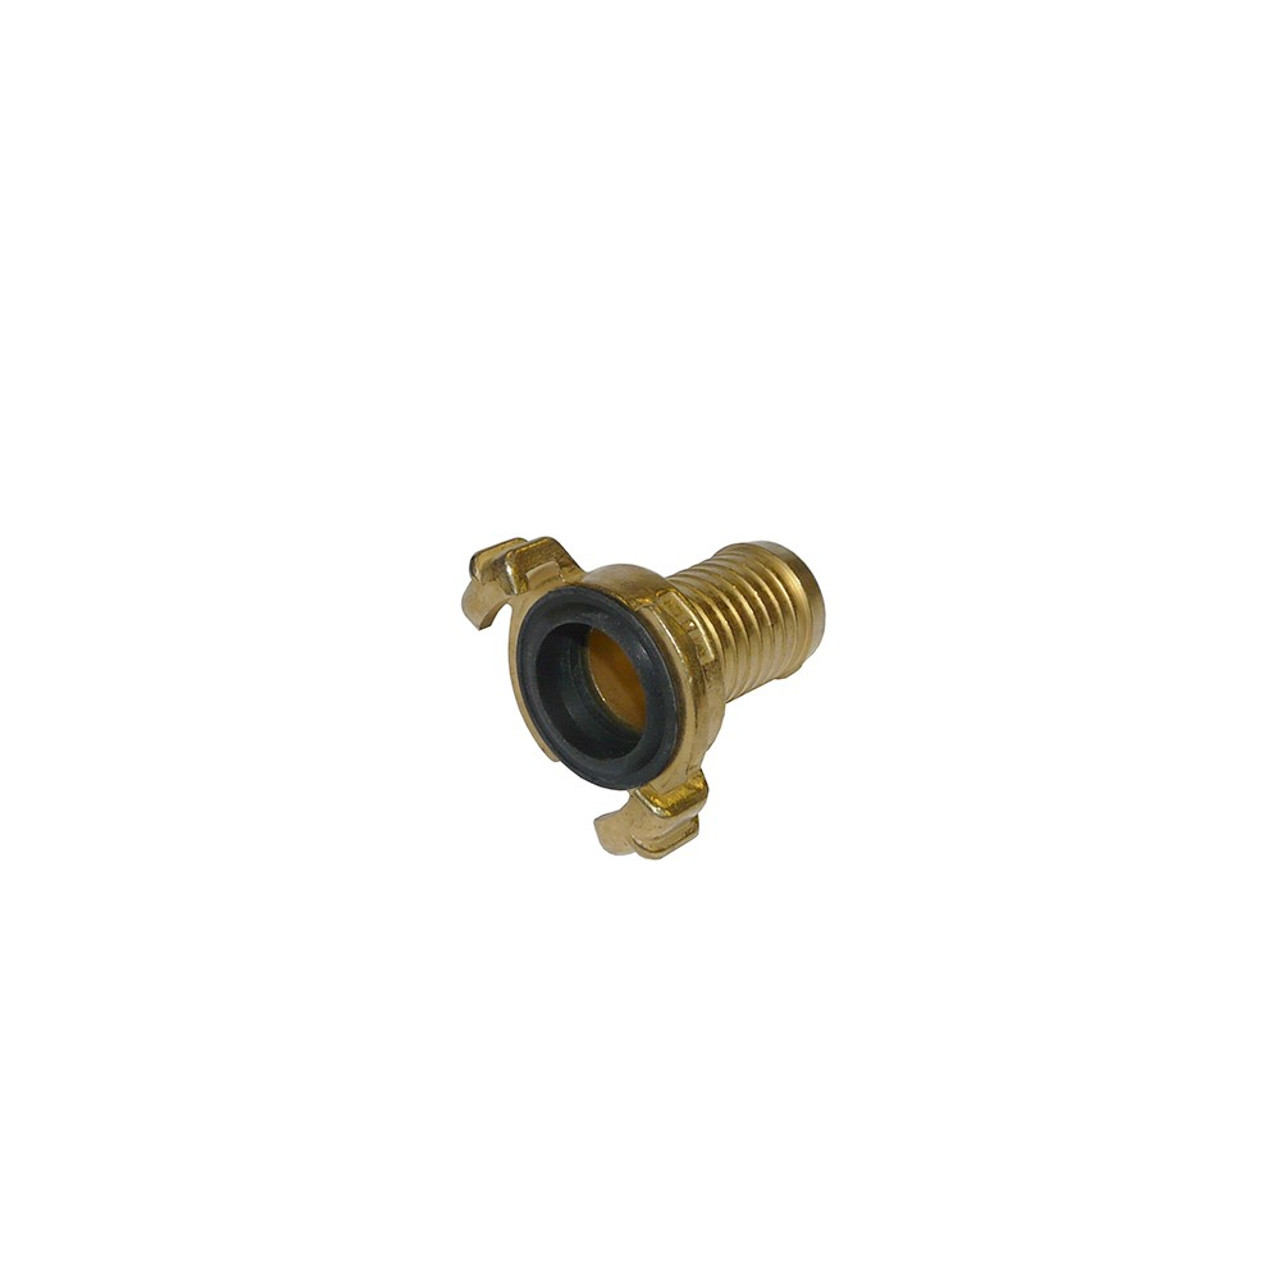 Imer Spare Part Geka Quick Connect 3/4 Barb Hose Tail